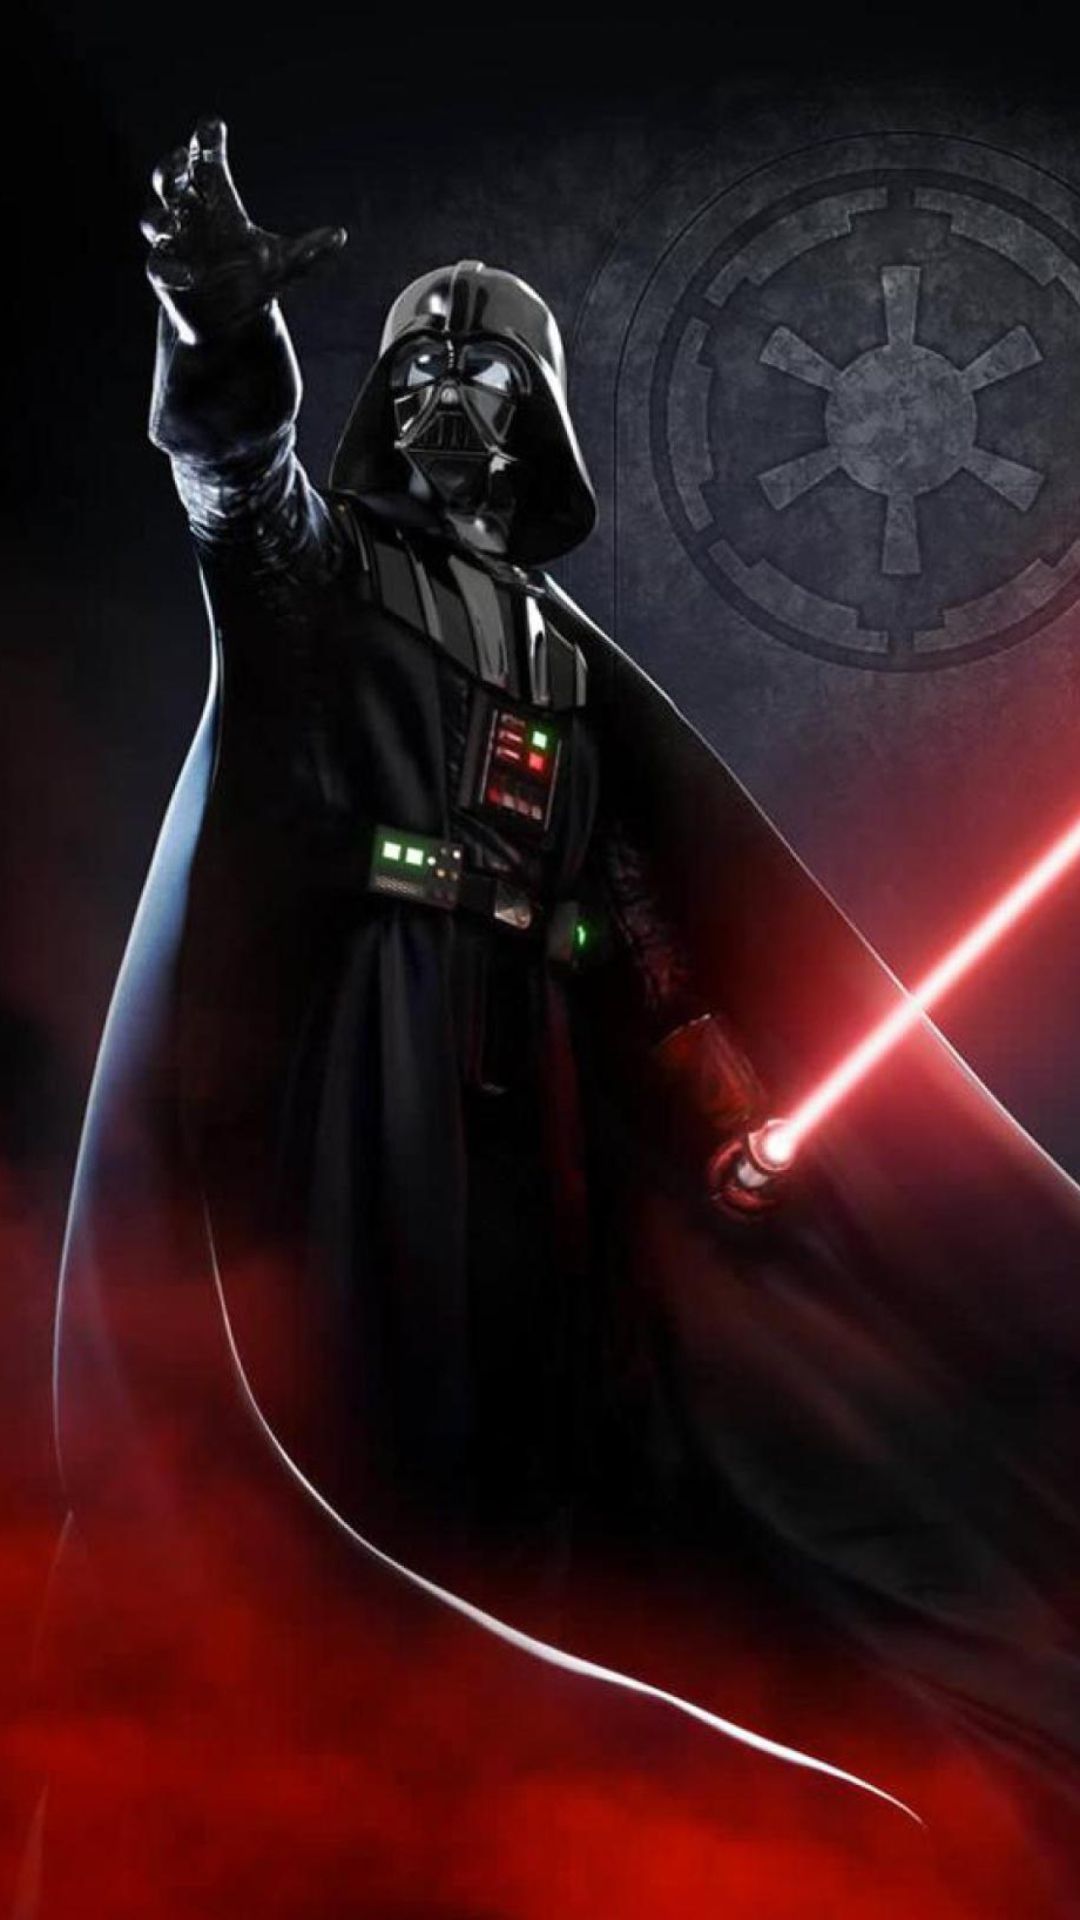 To Download The Wallpaper For Mobile Darth Vader